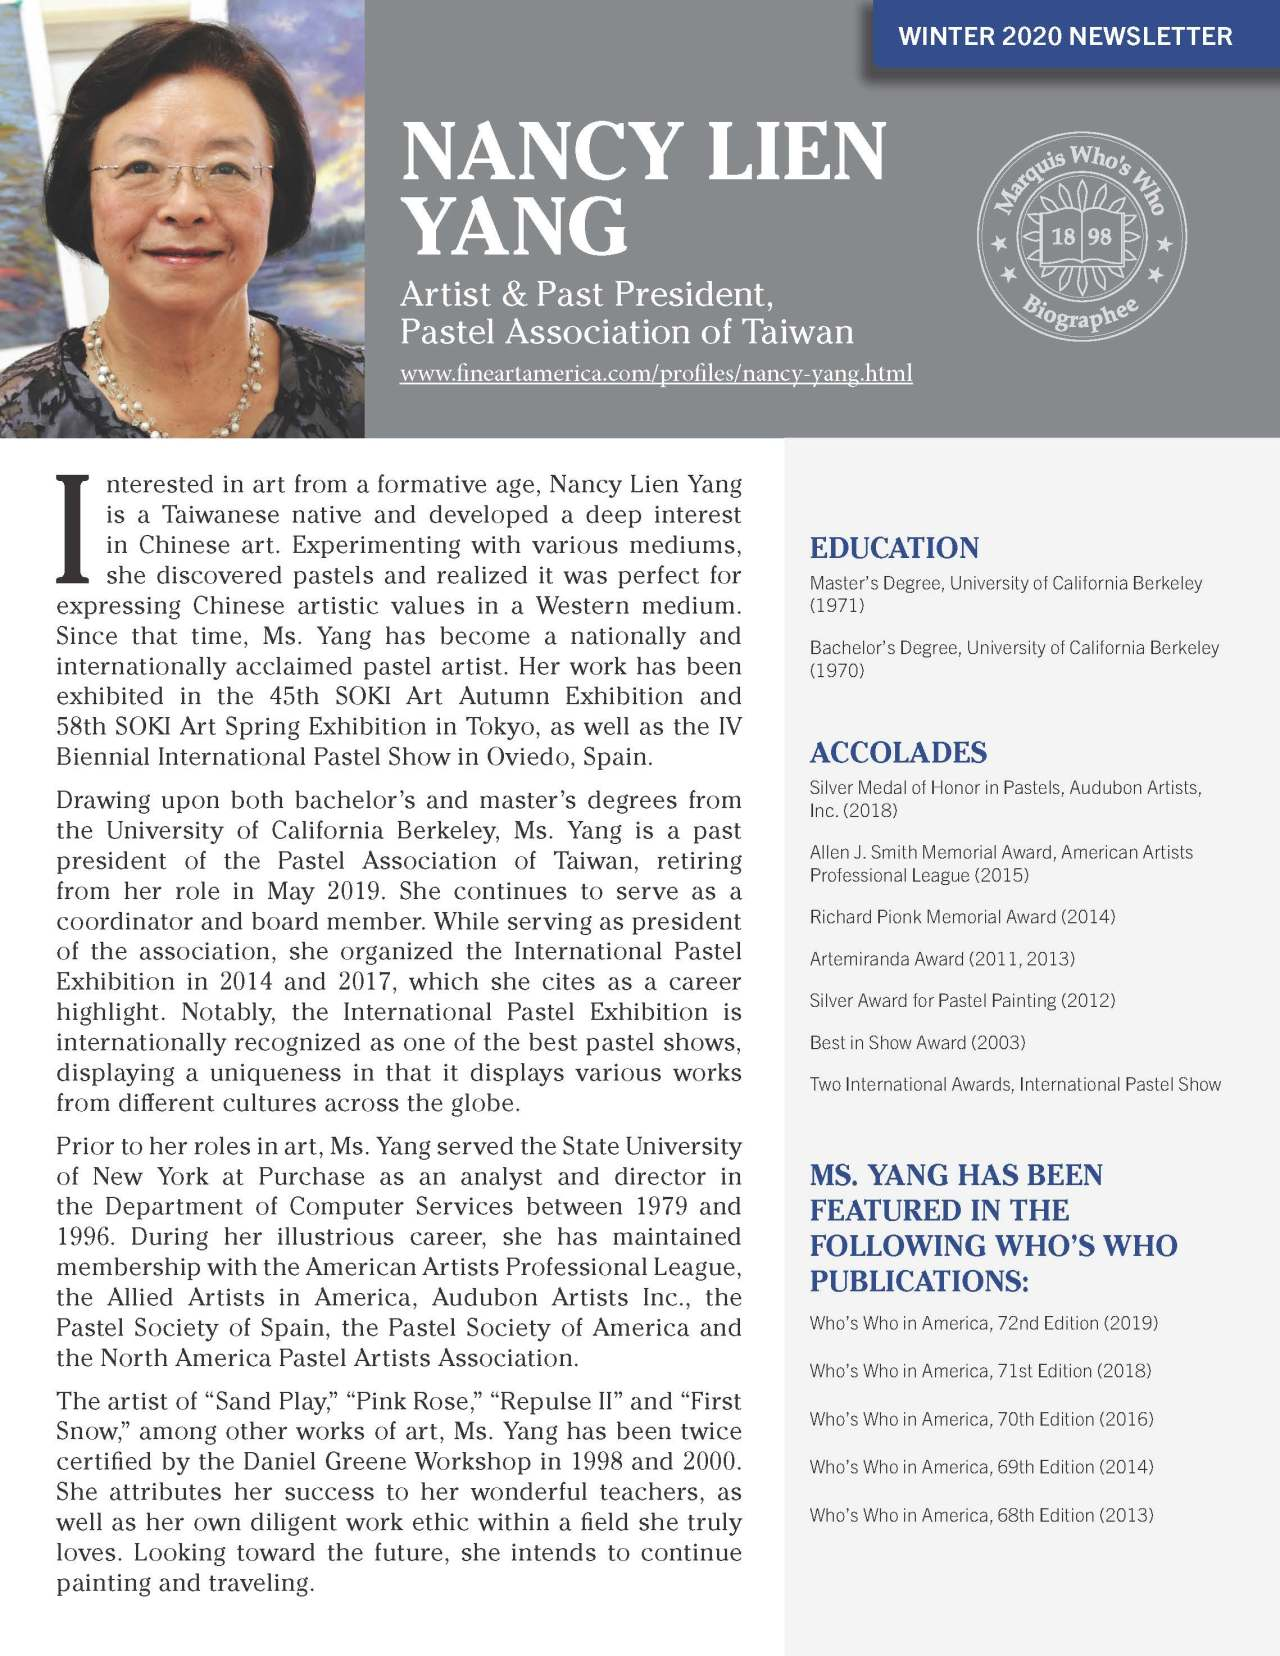 Yang, Nancy 2126425_36776757 Newsletter